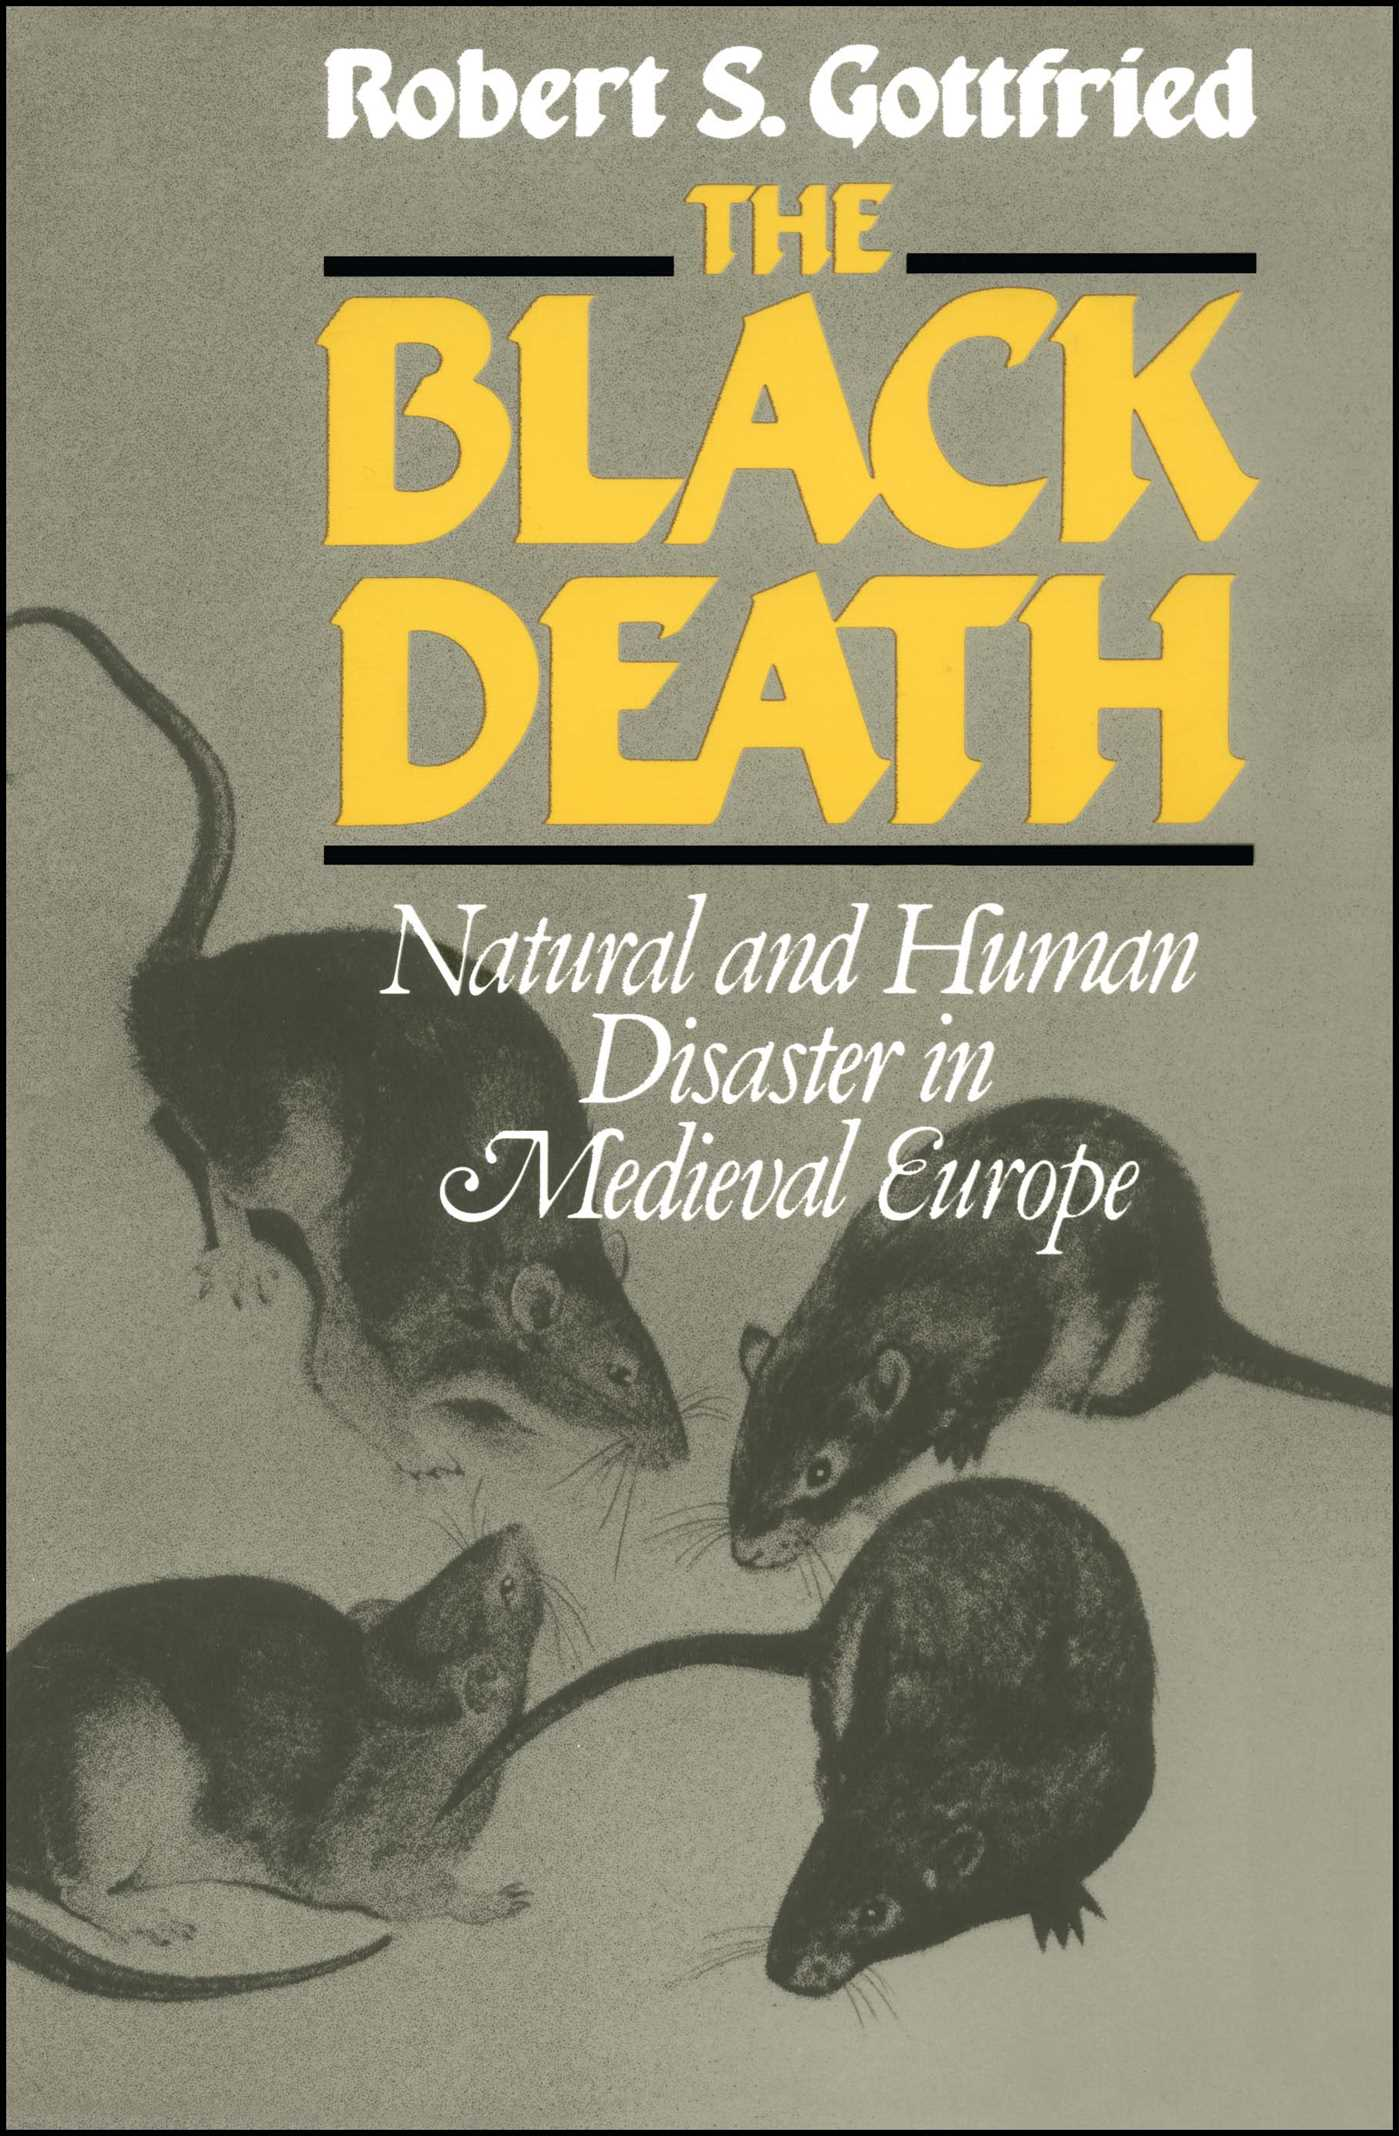 analysing the thesis in the black death by robert s gottfried According to robert s gottfried the black death, the black death was defined as a combination of bubonic, pneumonic, and septicaemic plague strains first, the black death plays a significant role in the economics part, the disaster was leaded population quickly decreased in europe.